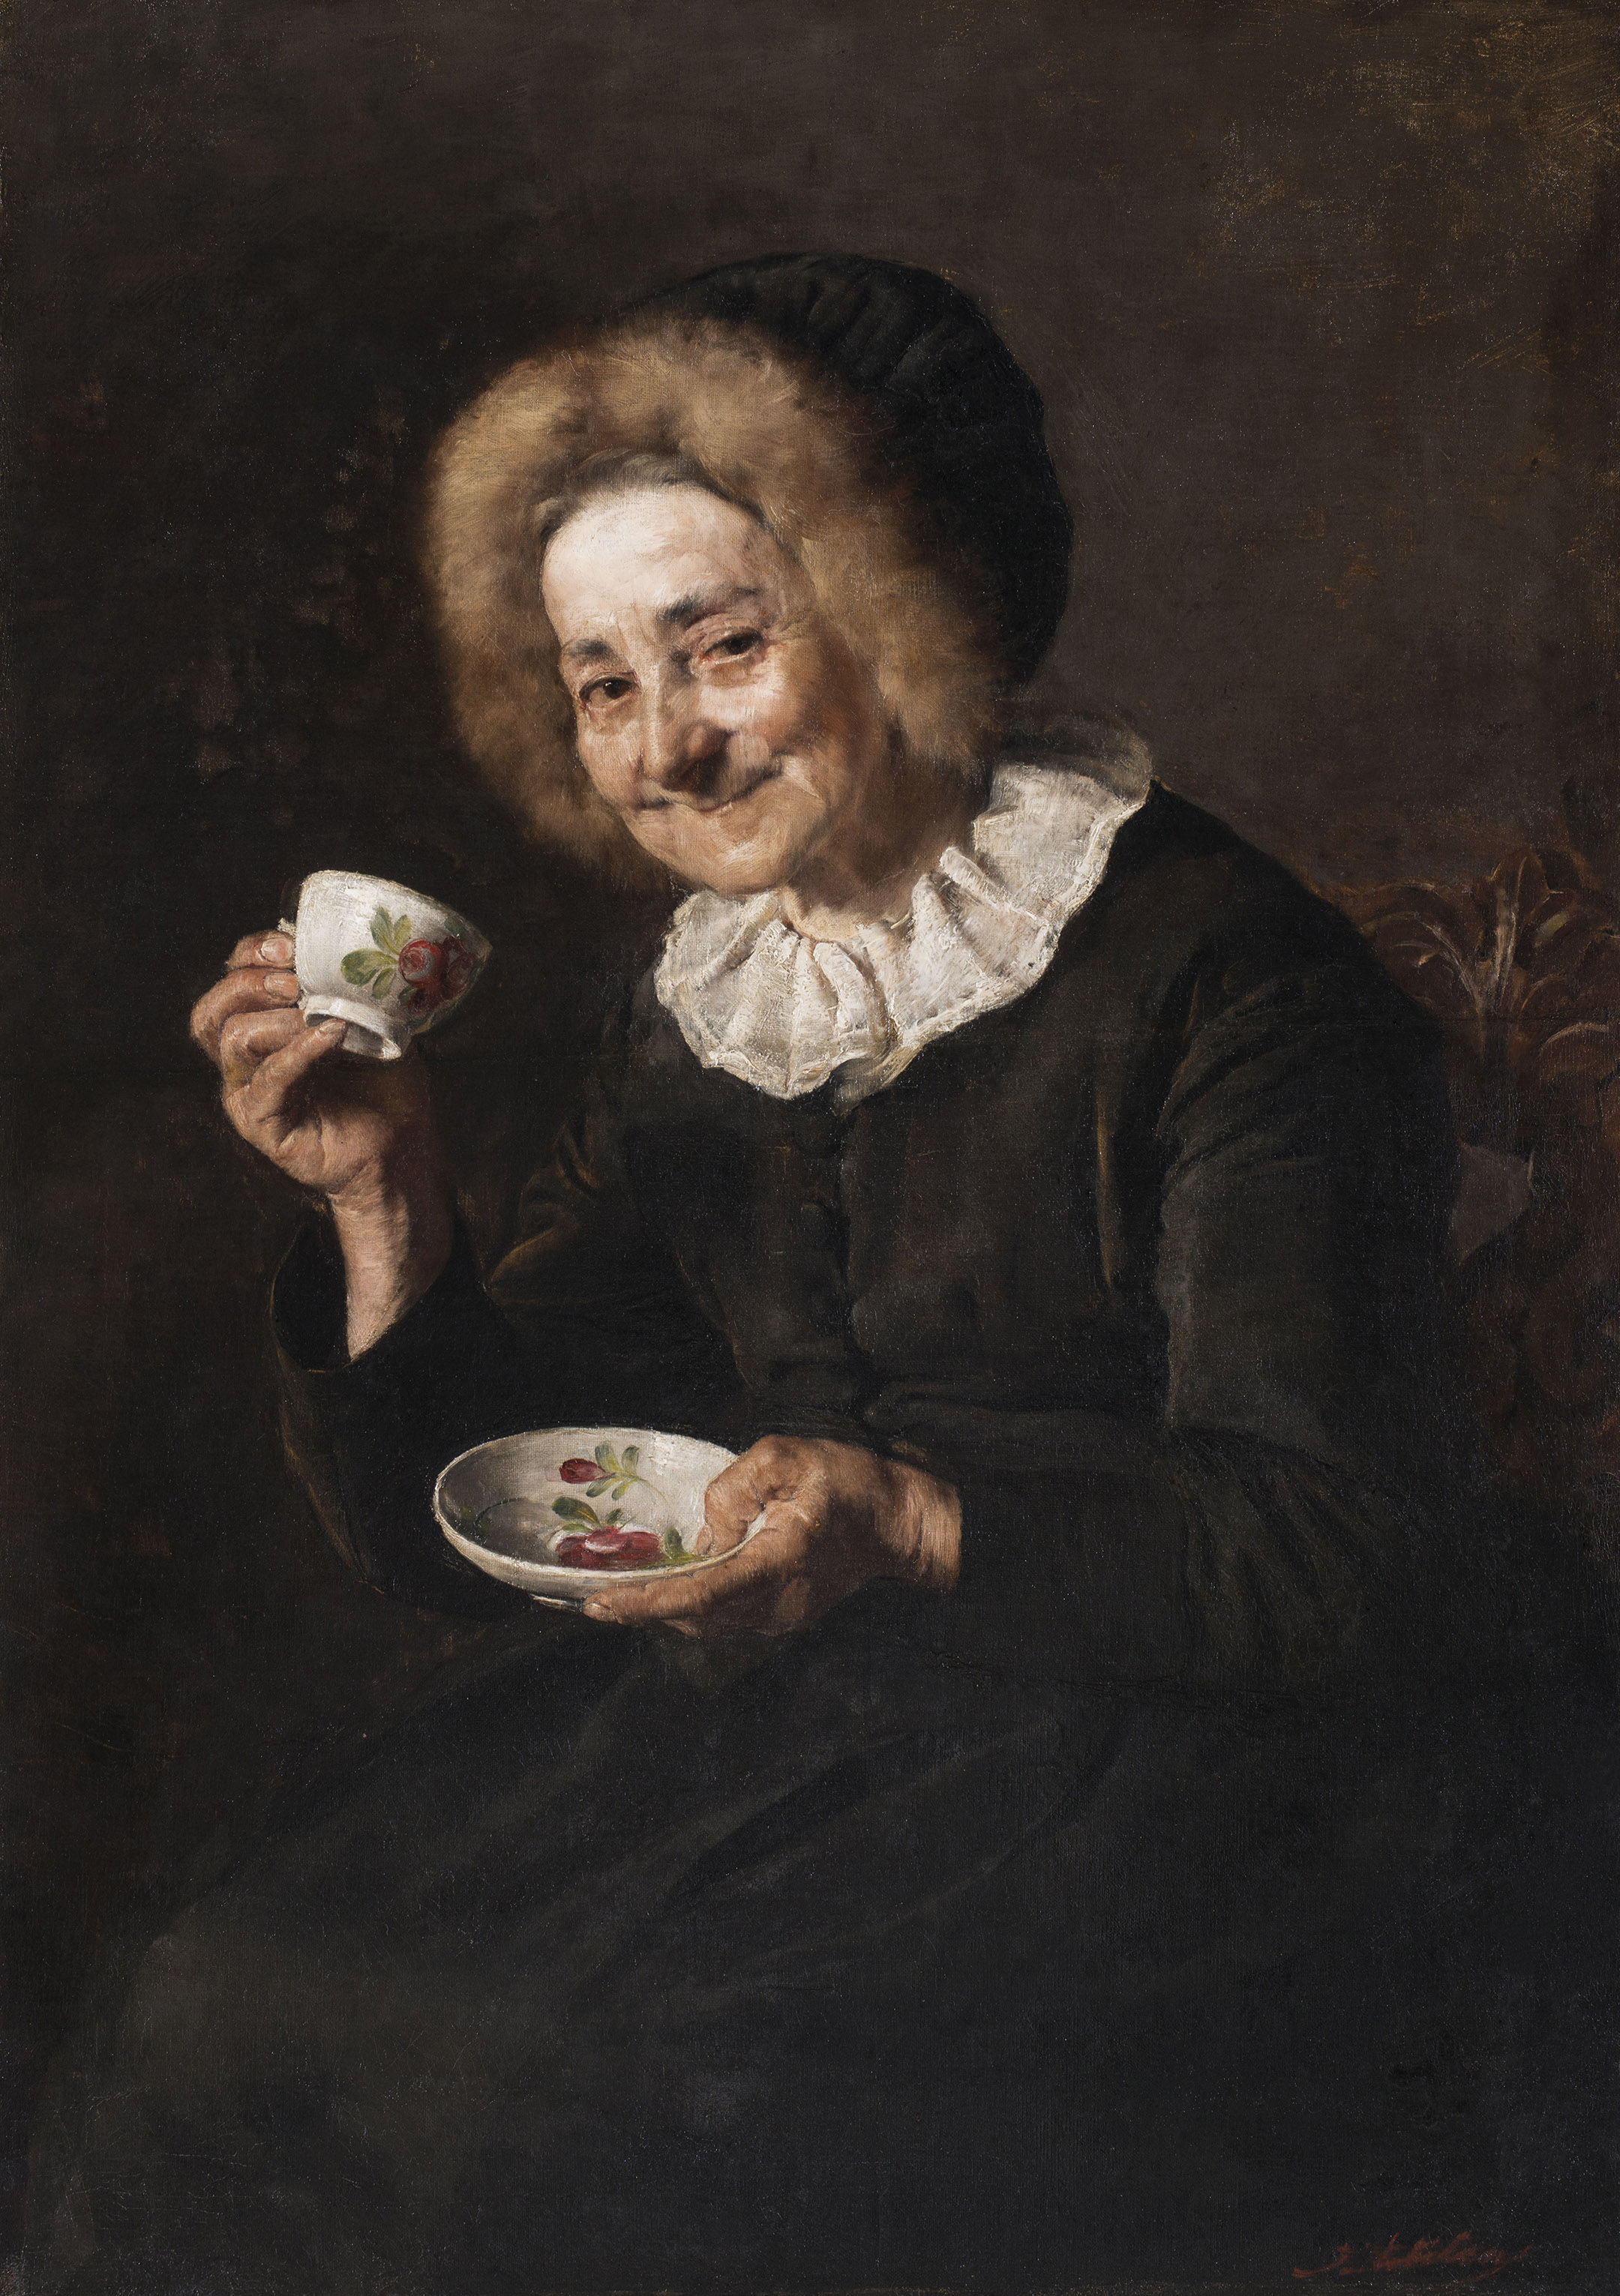 Coffee drinker, 1888 — Ivana Kobilca